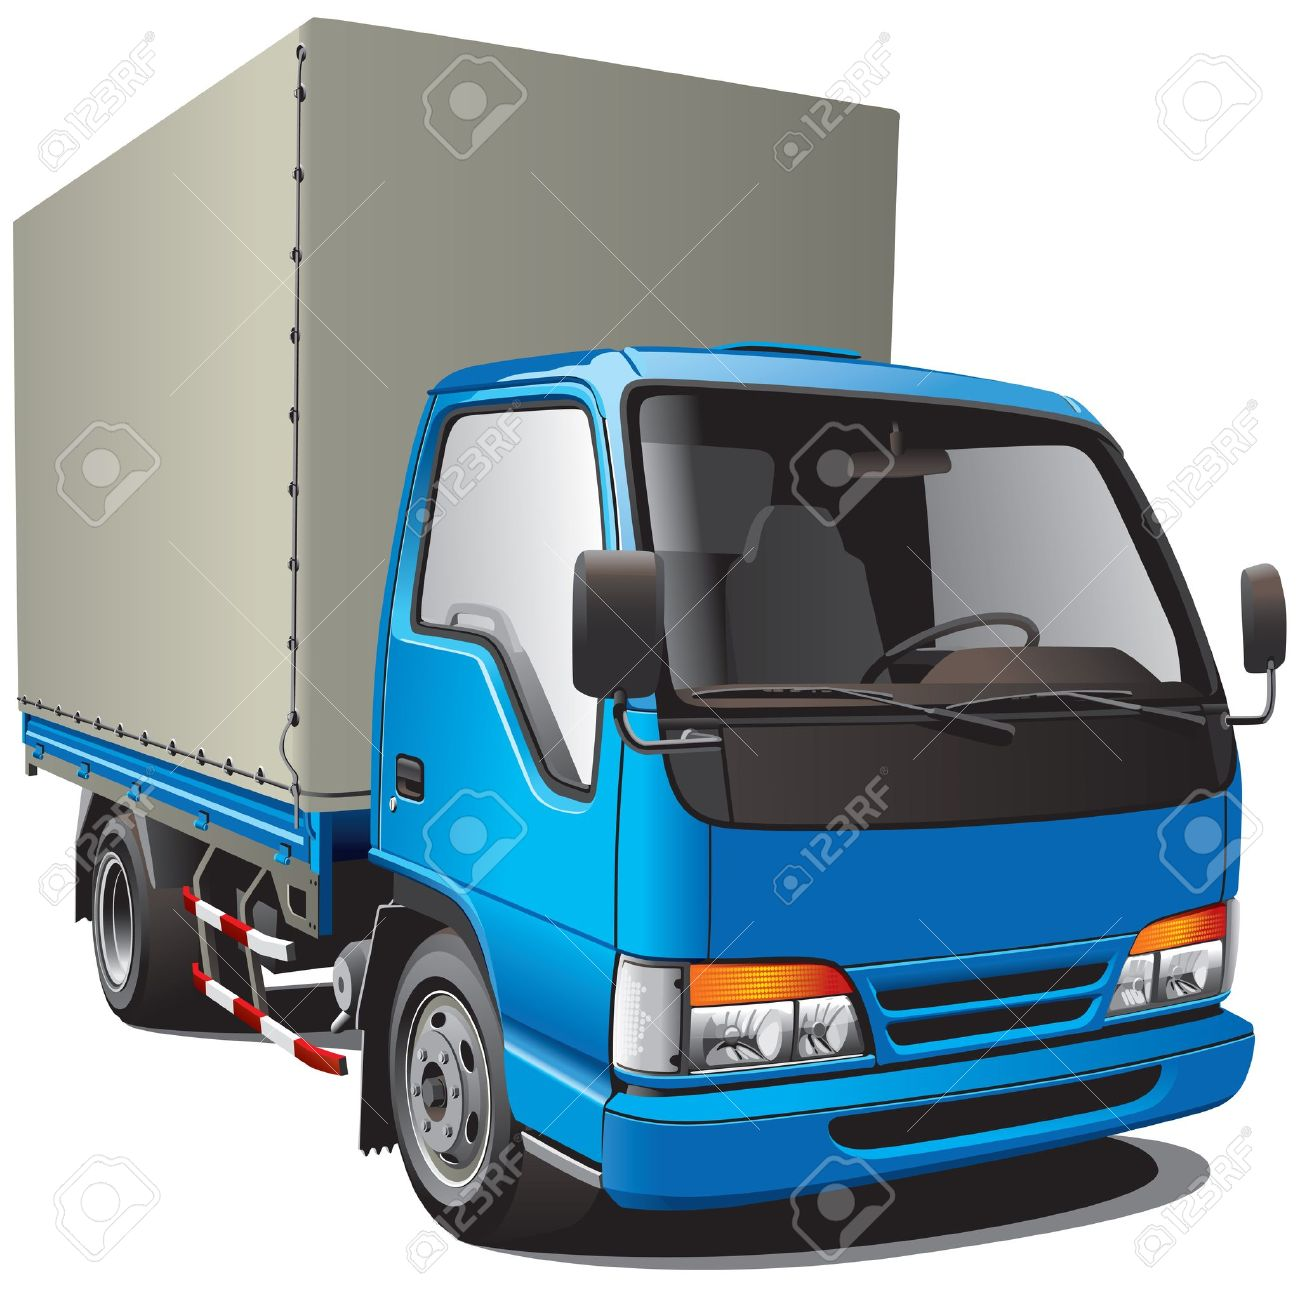 Detailed image of small blue truck, isolated on white background. File contains gradients. No blends and strokes. Stock Vector - 11663493